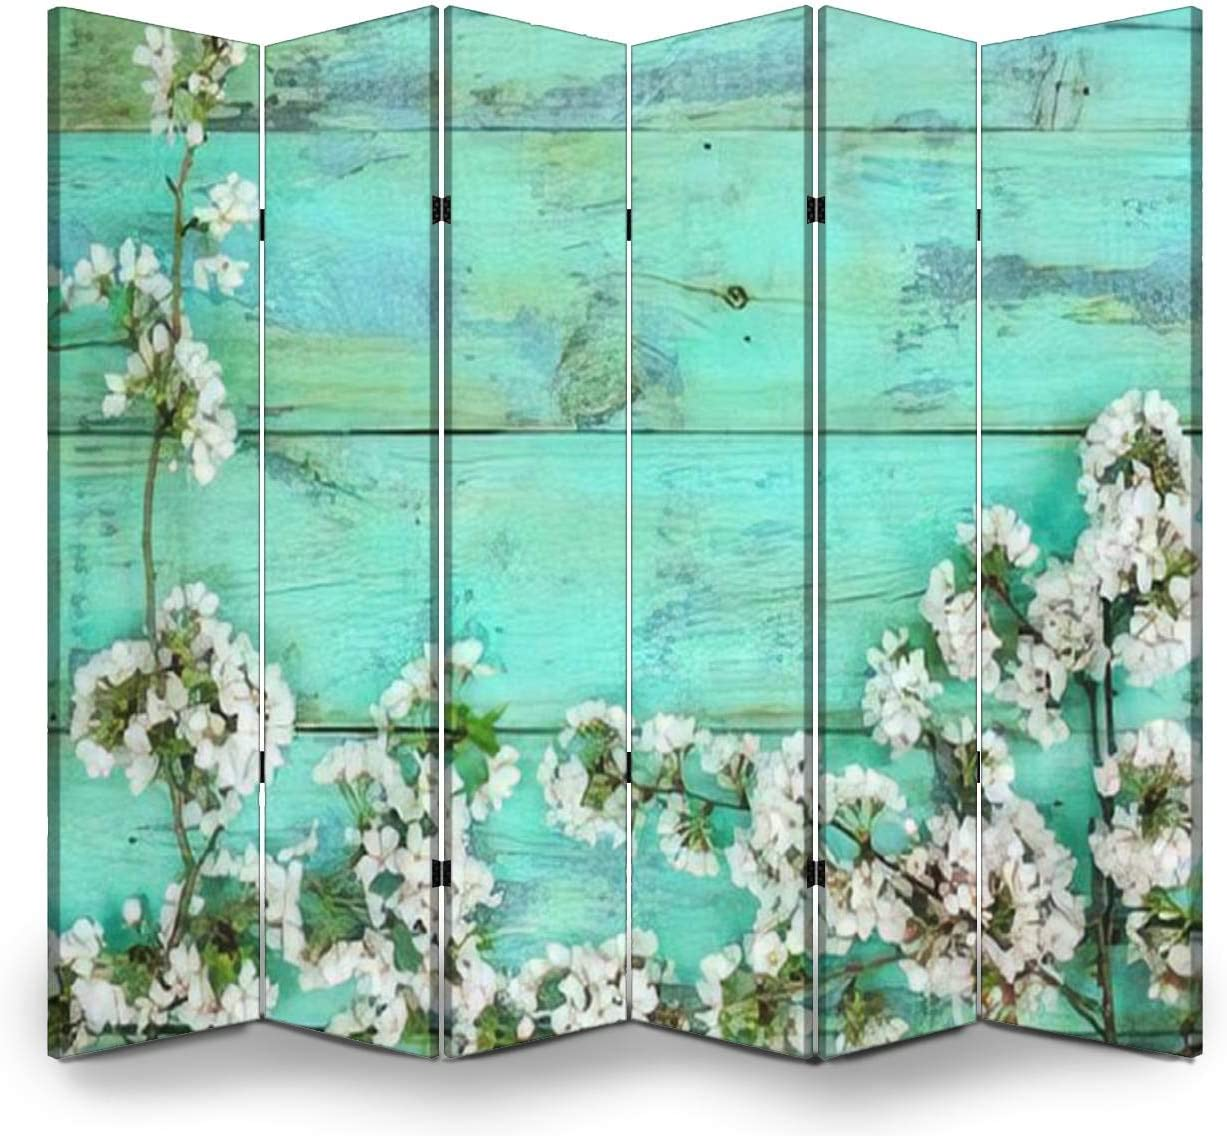 Wood Screen Room Divider Blank rustic mint green wood sign with white spring flowers border; Folding Screen Canvas Privacy Partition Panels Dual-Sided Wall Divider Indoor Display Shelves 6 Panels